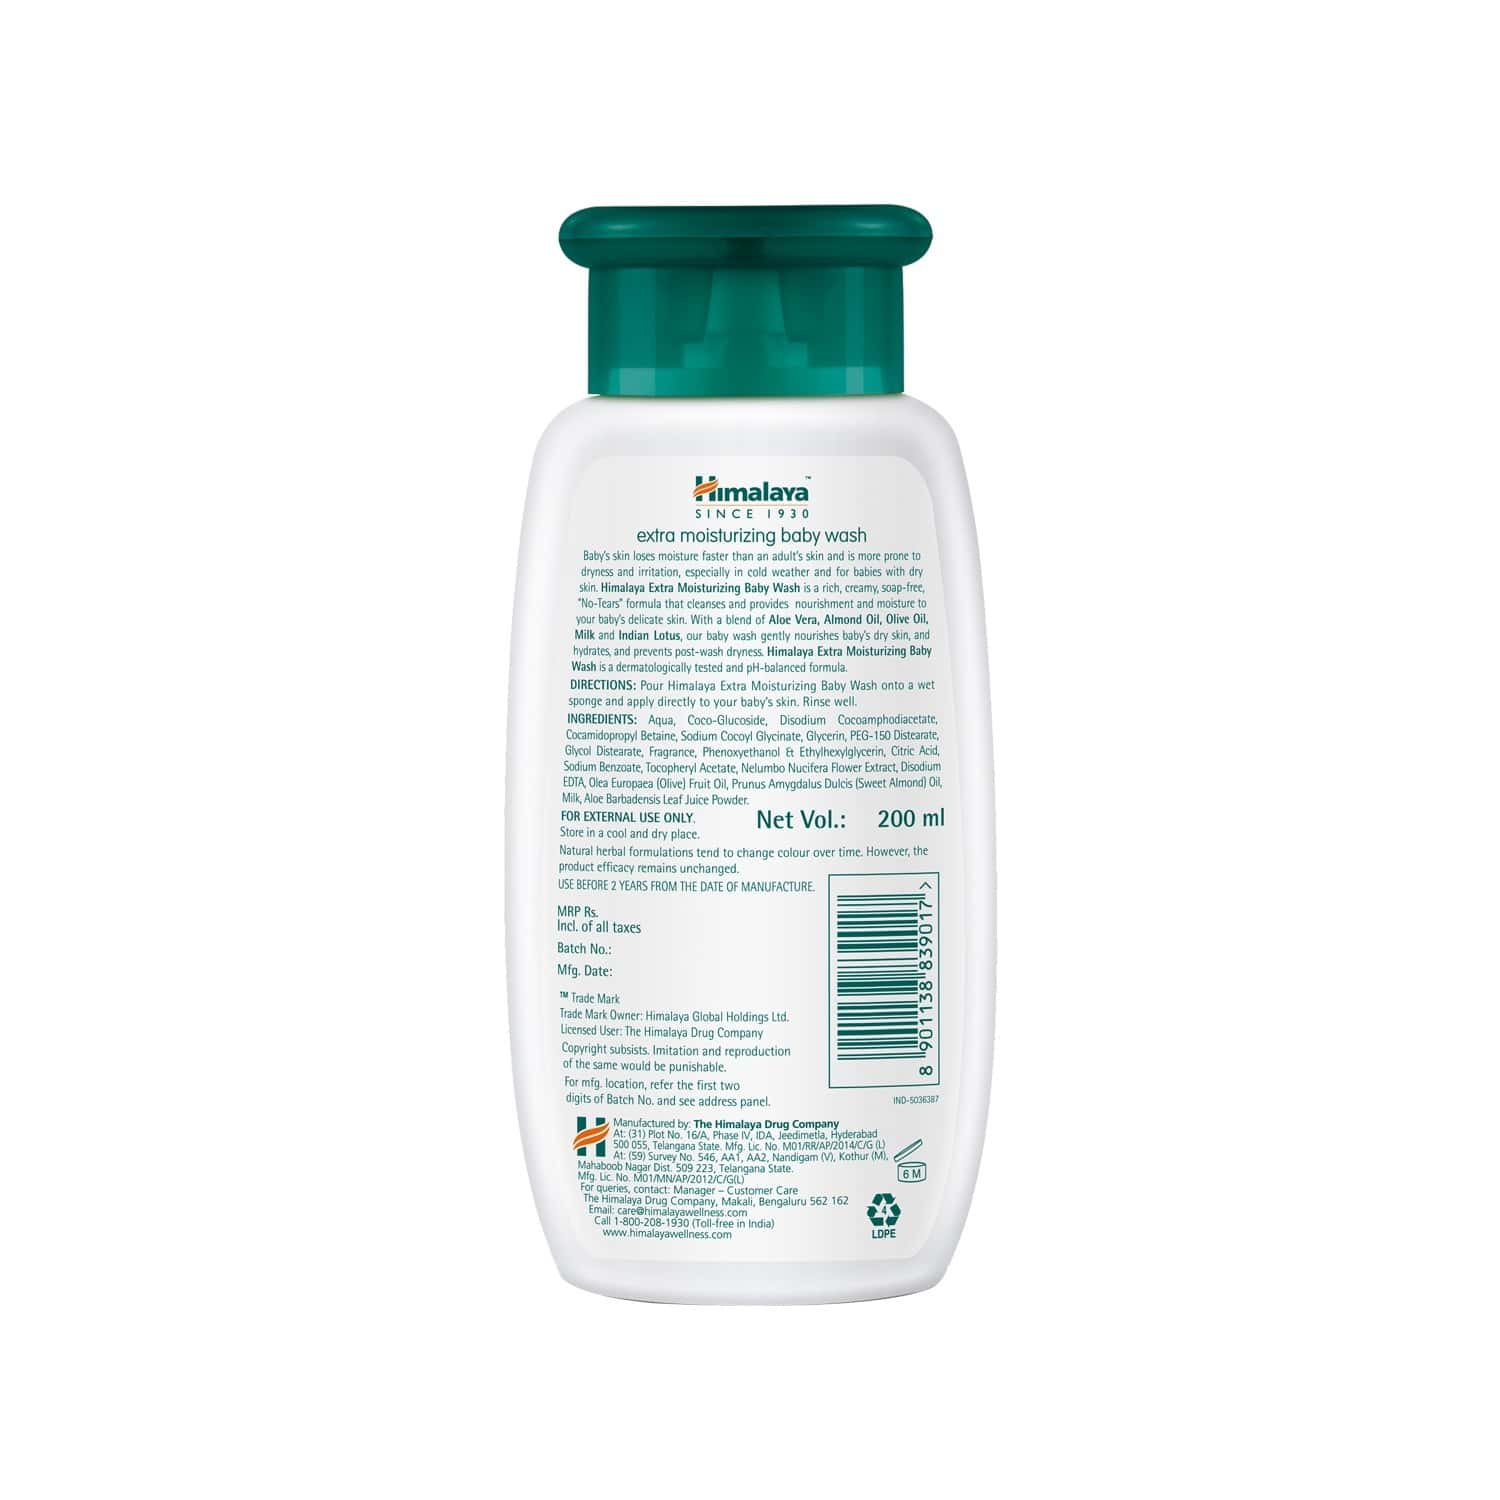 Himalaya Baby Extra Moisturizing Baby Wash Bottle Of 200 Ml